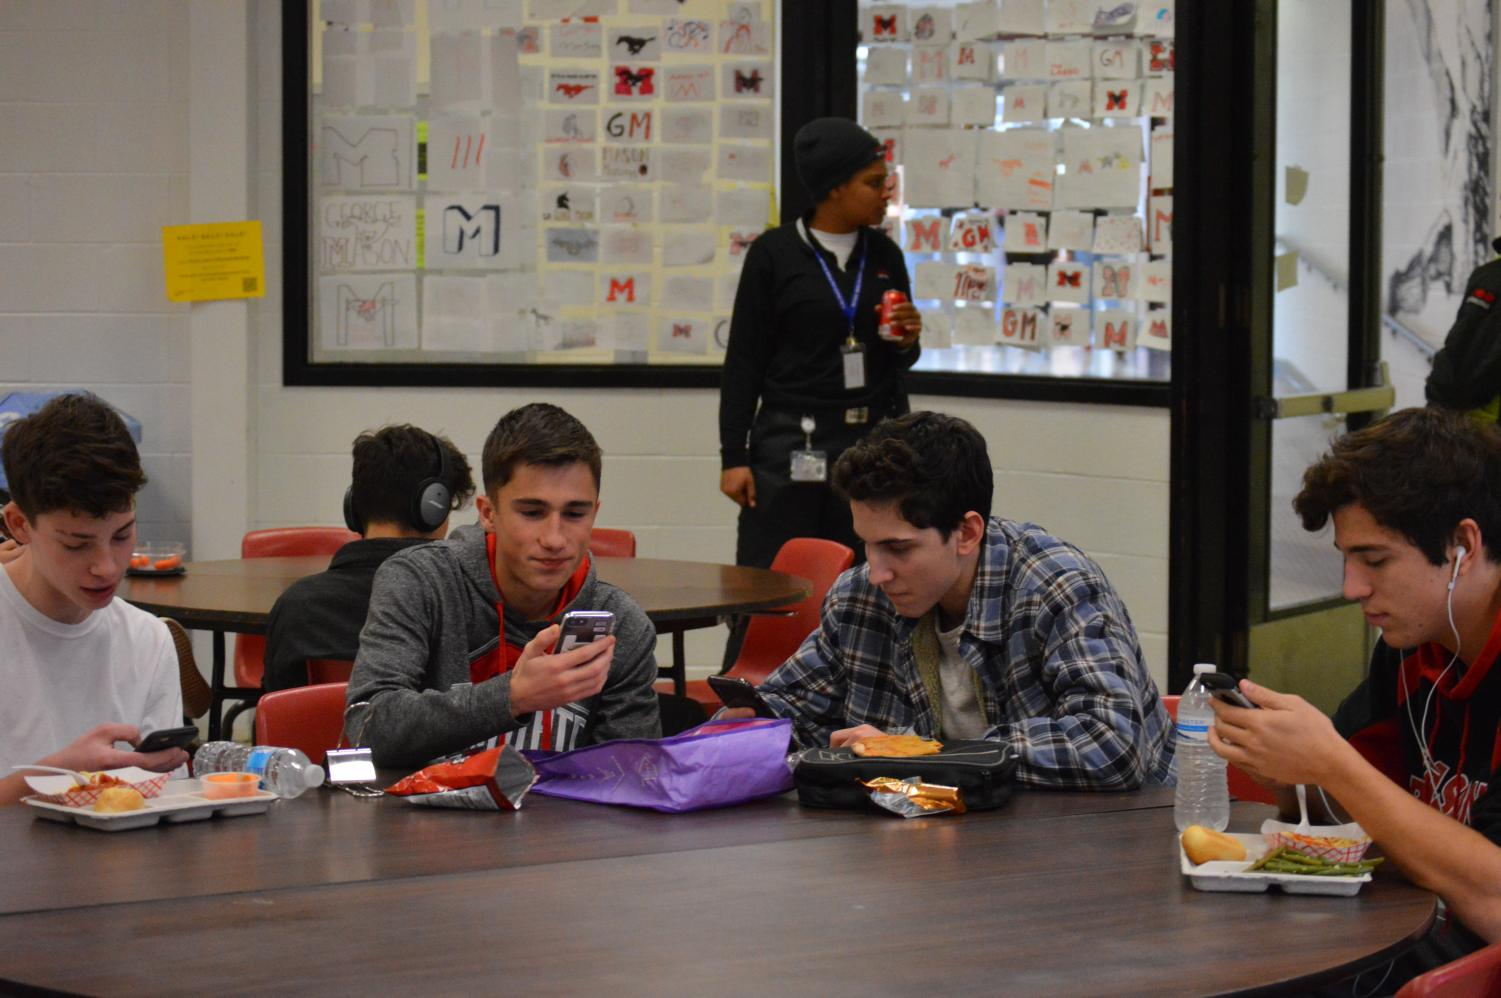 Sophomores (Left to right) Troup Jacobson, Hans Abruzzi, Evan Lankford, and Alex Hansen sit at the lunch table on their phones without interacting. This is a common scene among sophomores.